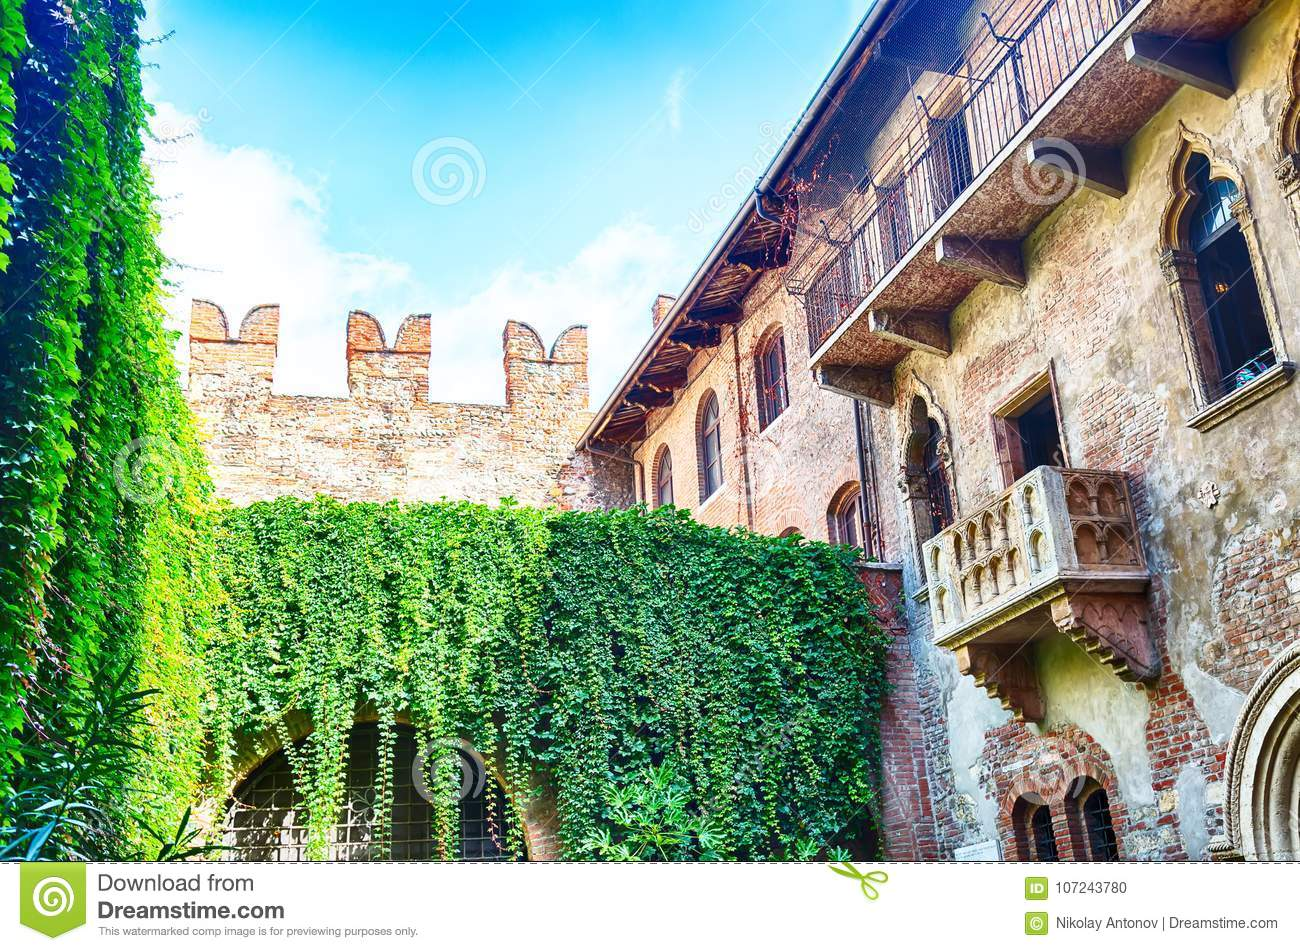 Download Romeo And Juliet Balcony In Verona, Italy During Summer Day And Blue Sky. Stock Photo - Image of green, giulietta: 107243780